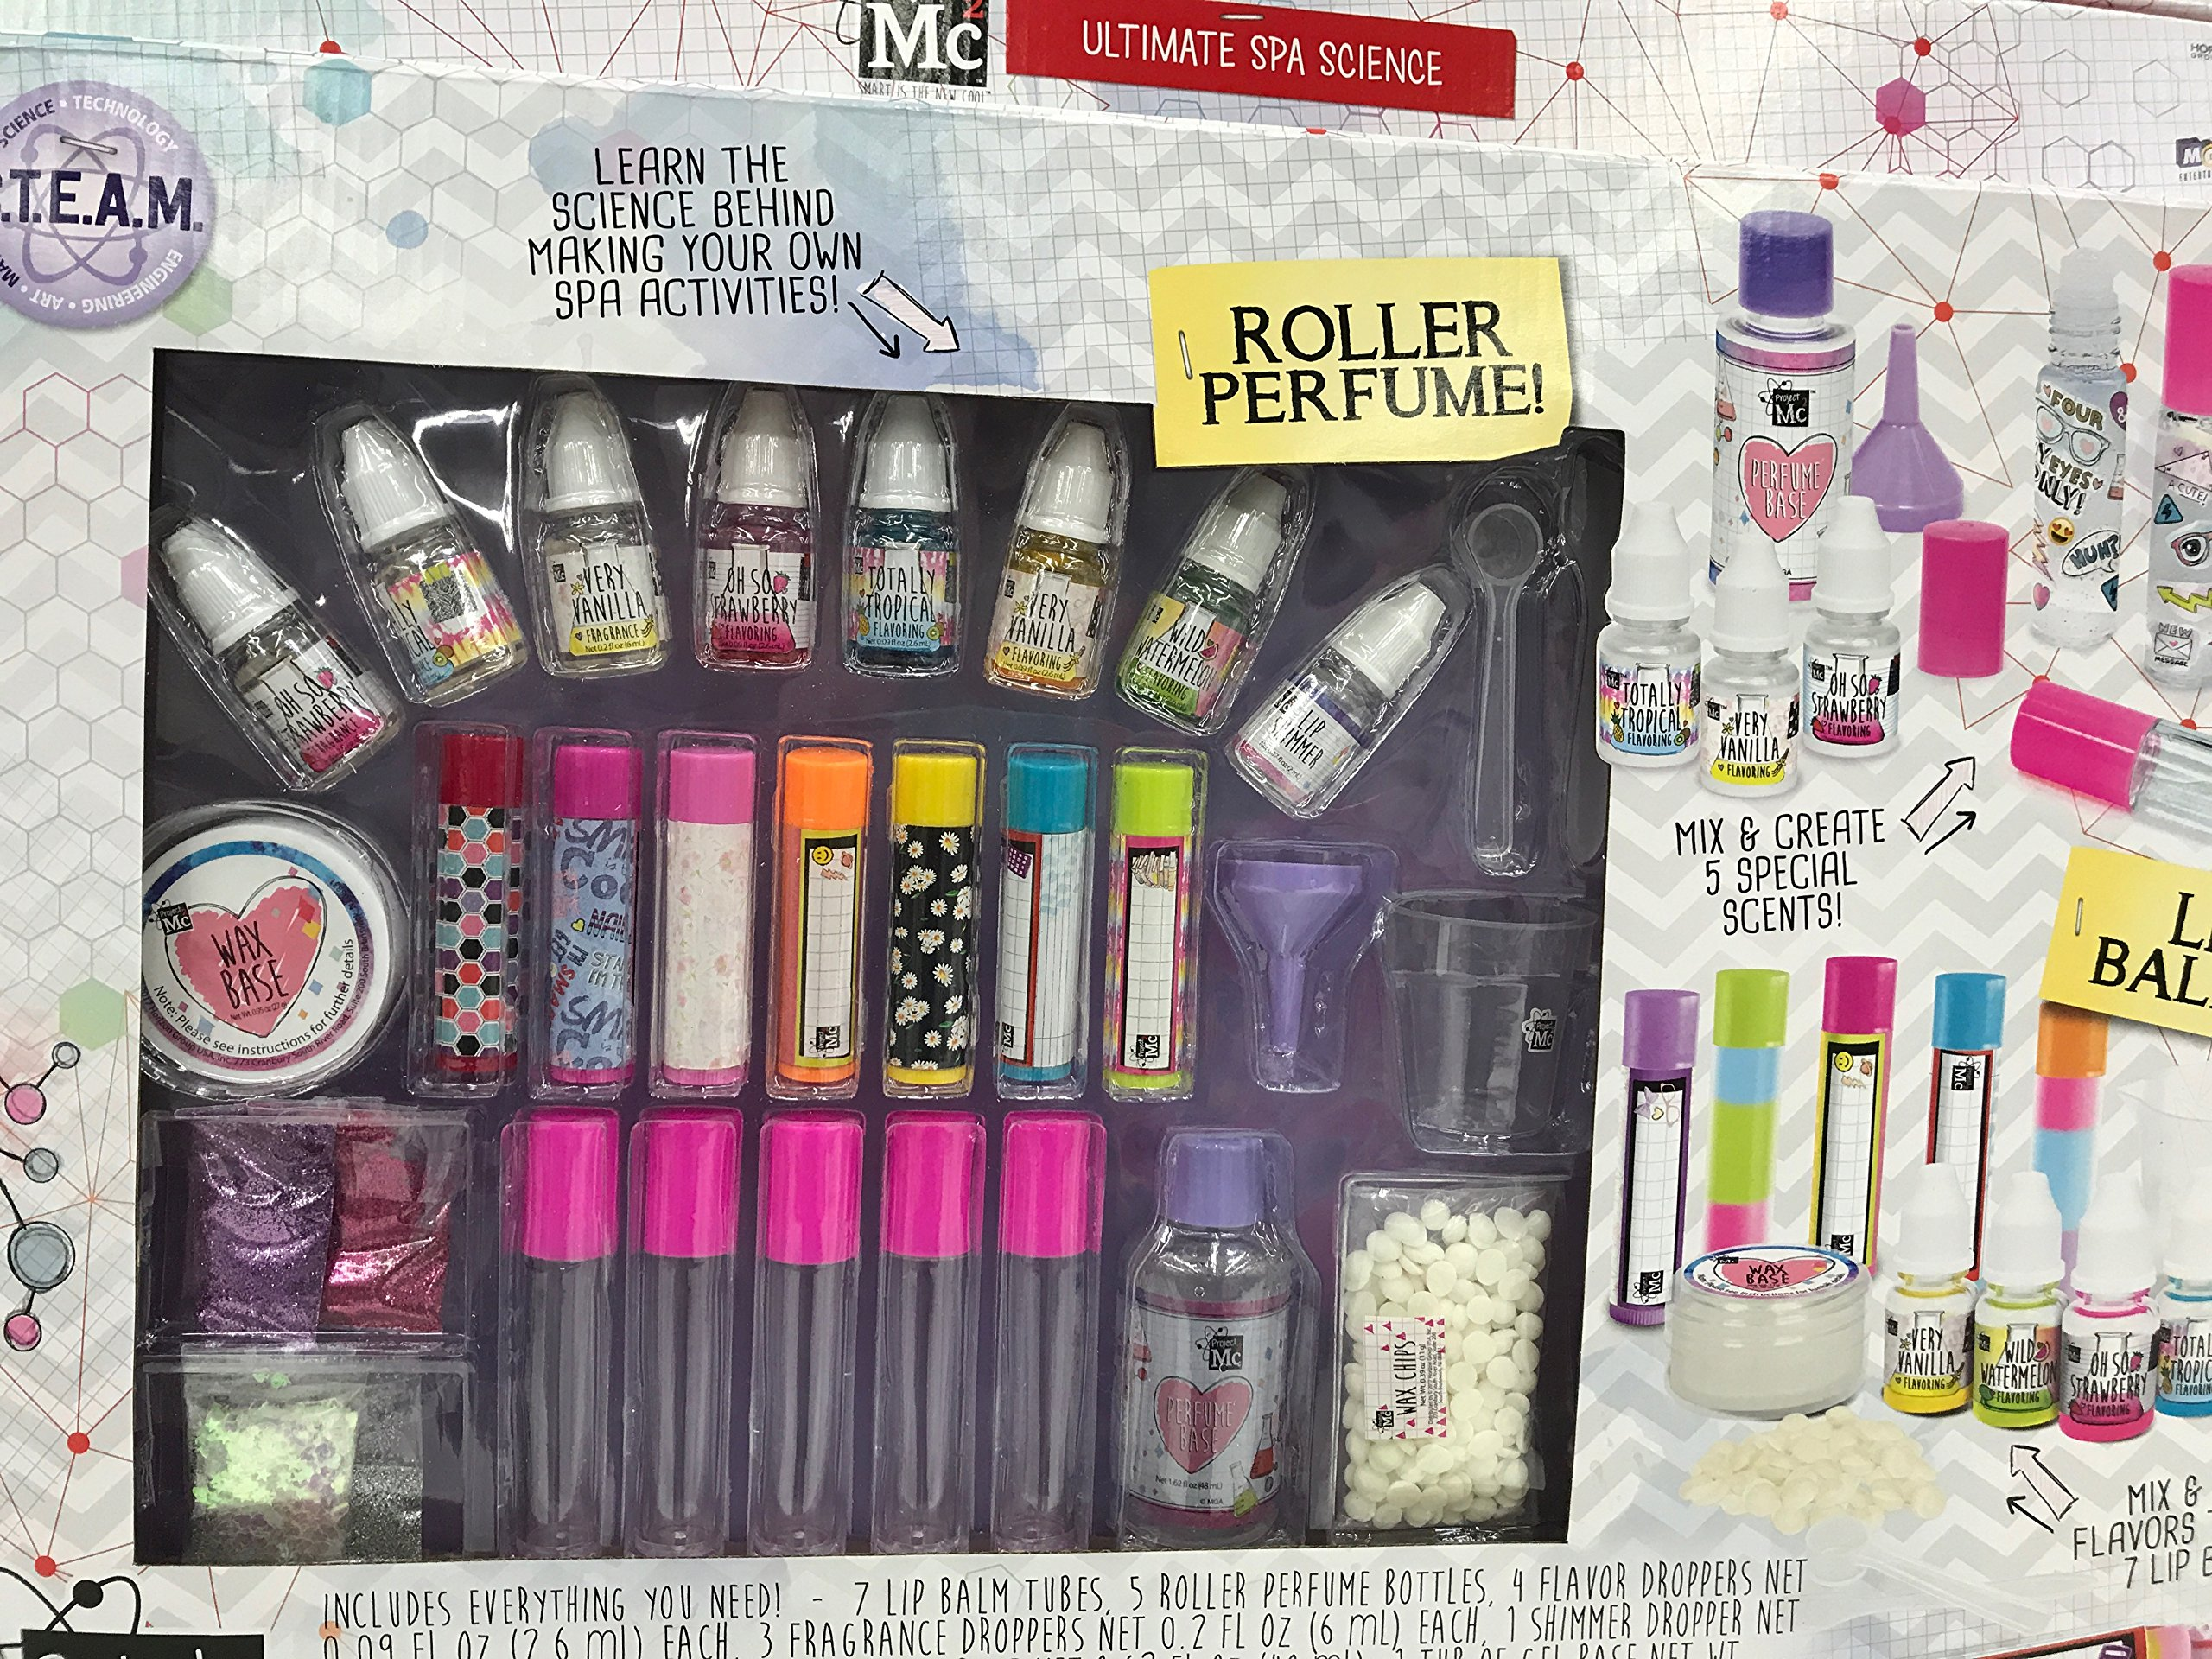 Project MC2 Ultimate Spa Science Lab Includes Lip Balms and Roller Perfume